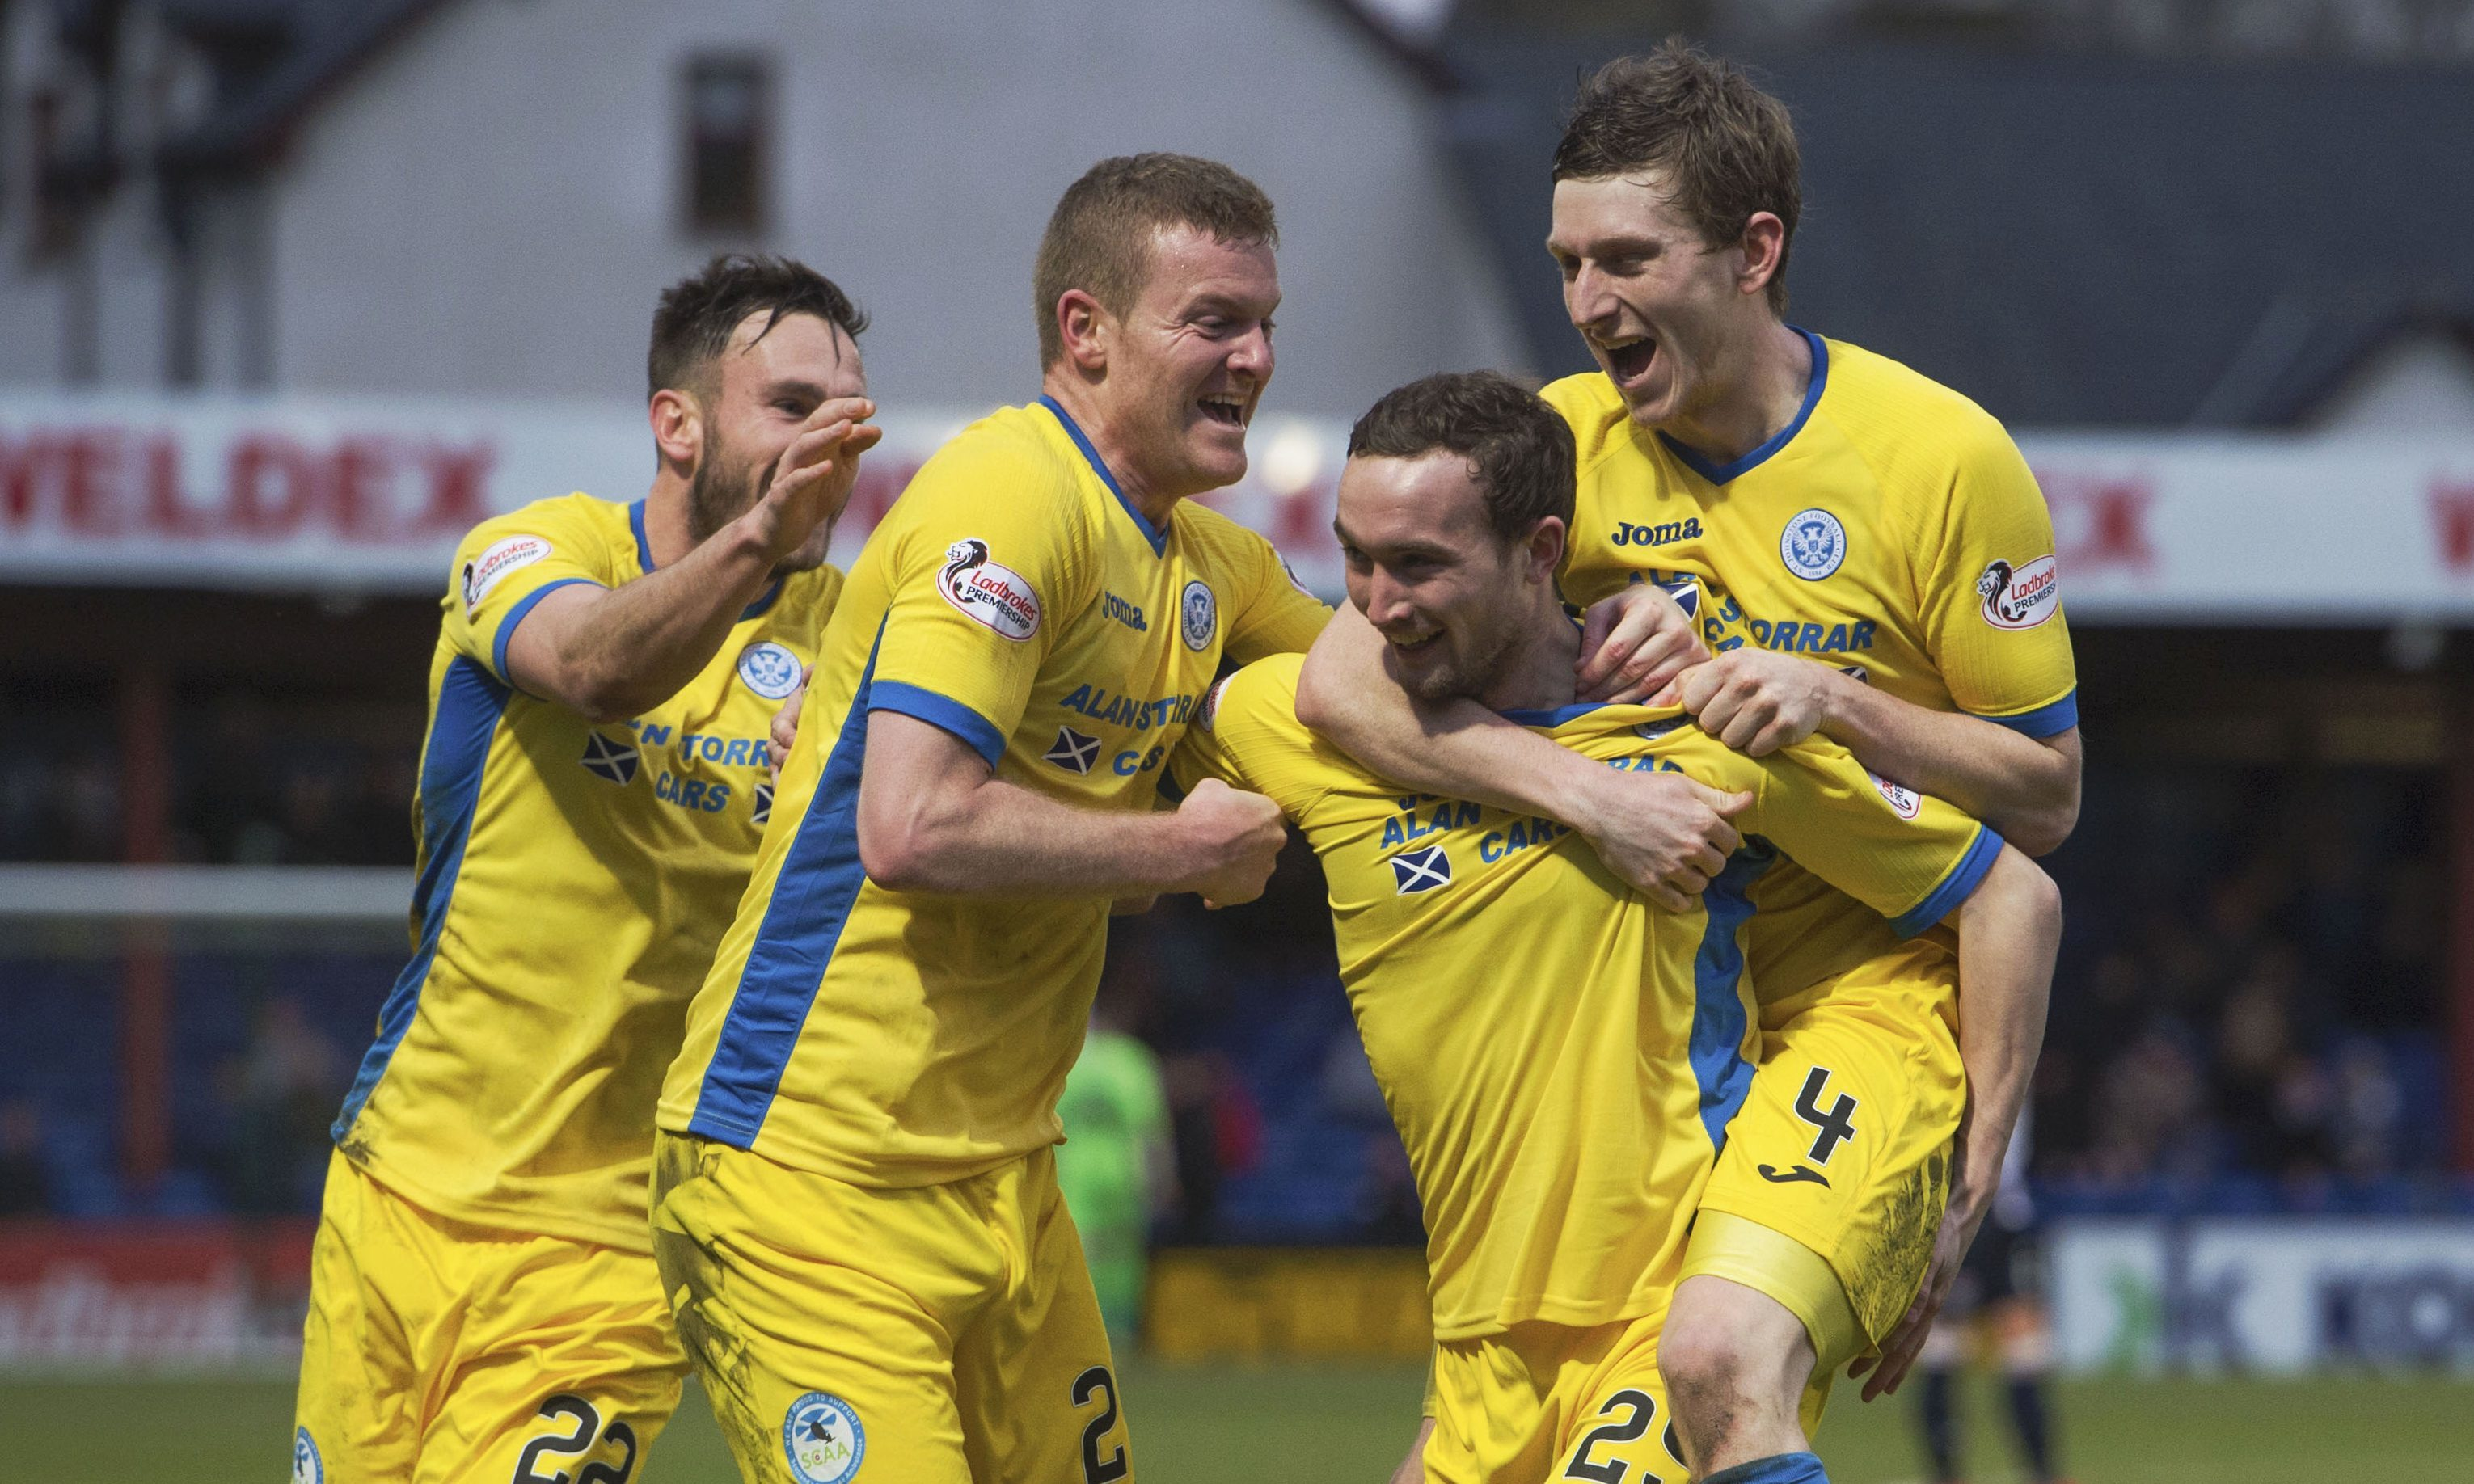 St Johnstone's Chris Kane is mobbed by teammates after clinching his side's late winner.